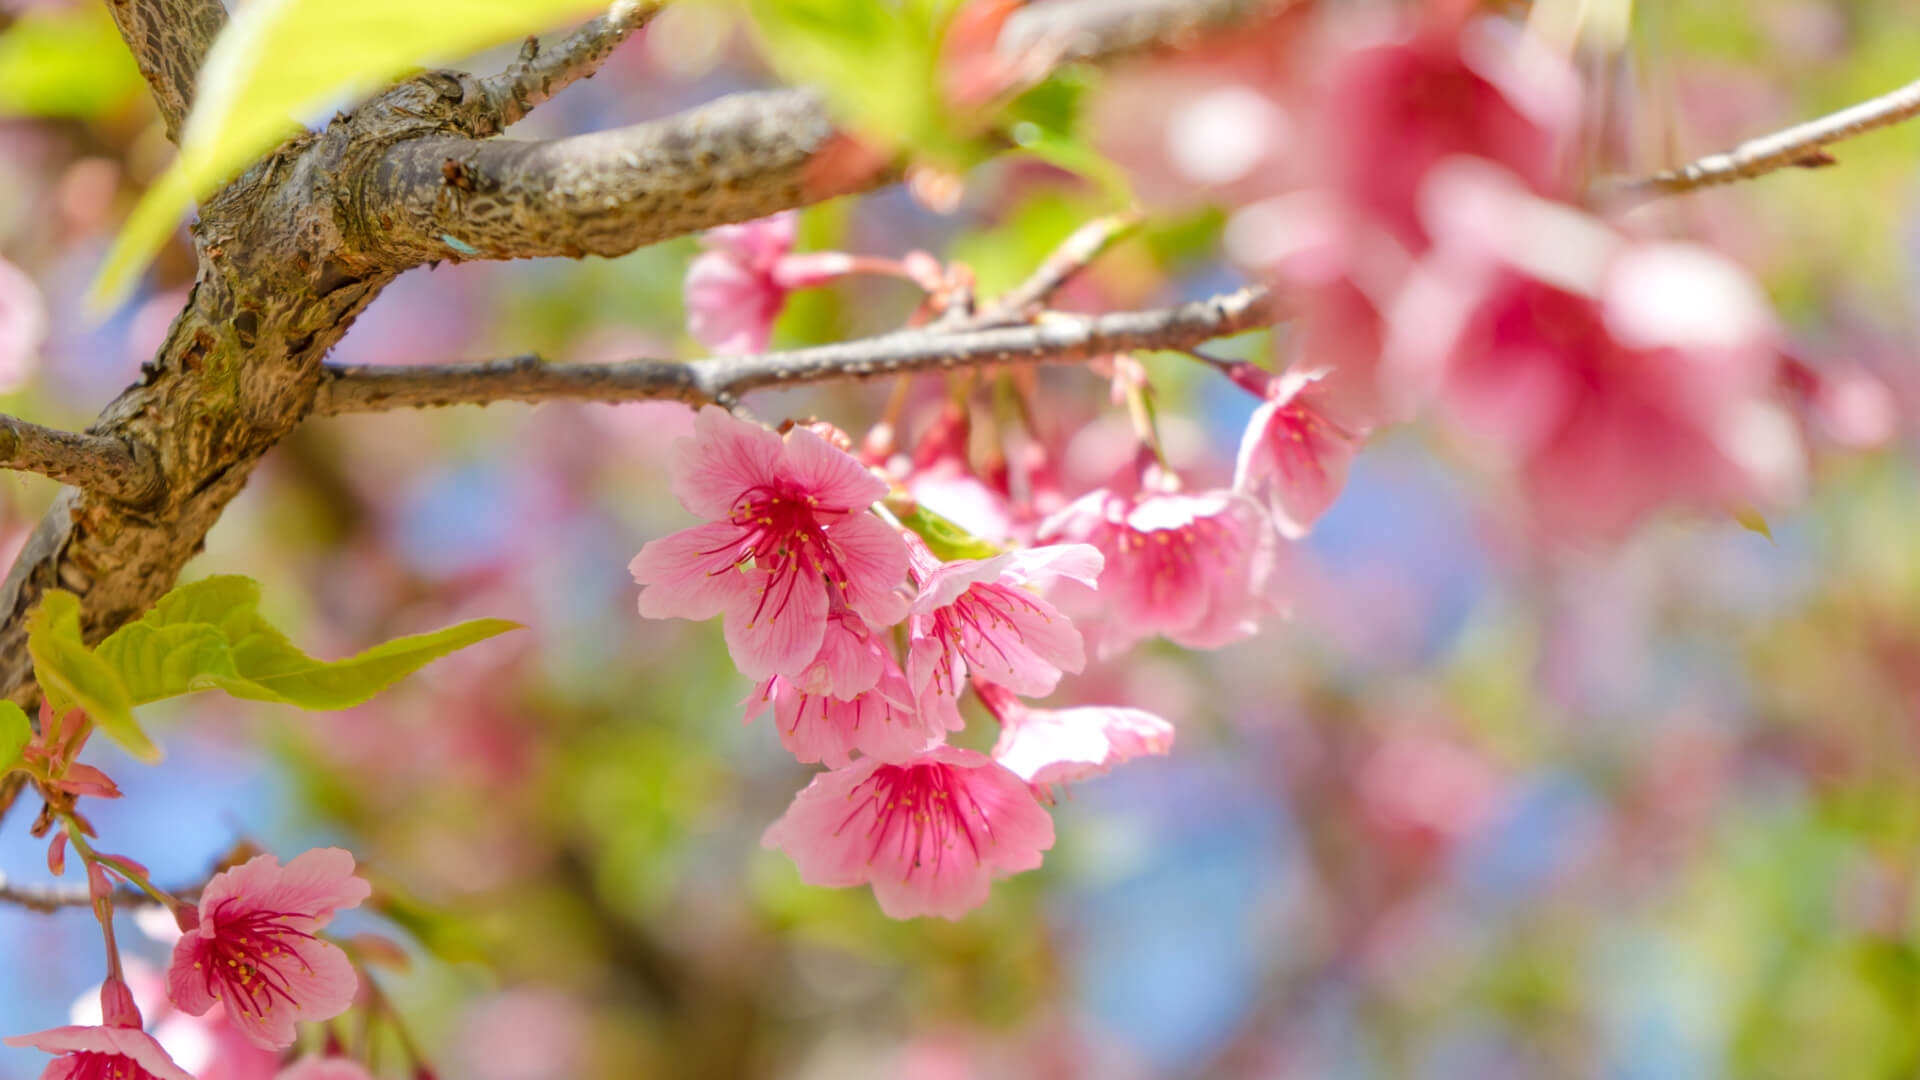 20 types of flowering trees with pictures for easy identification